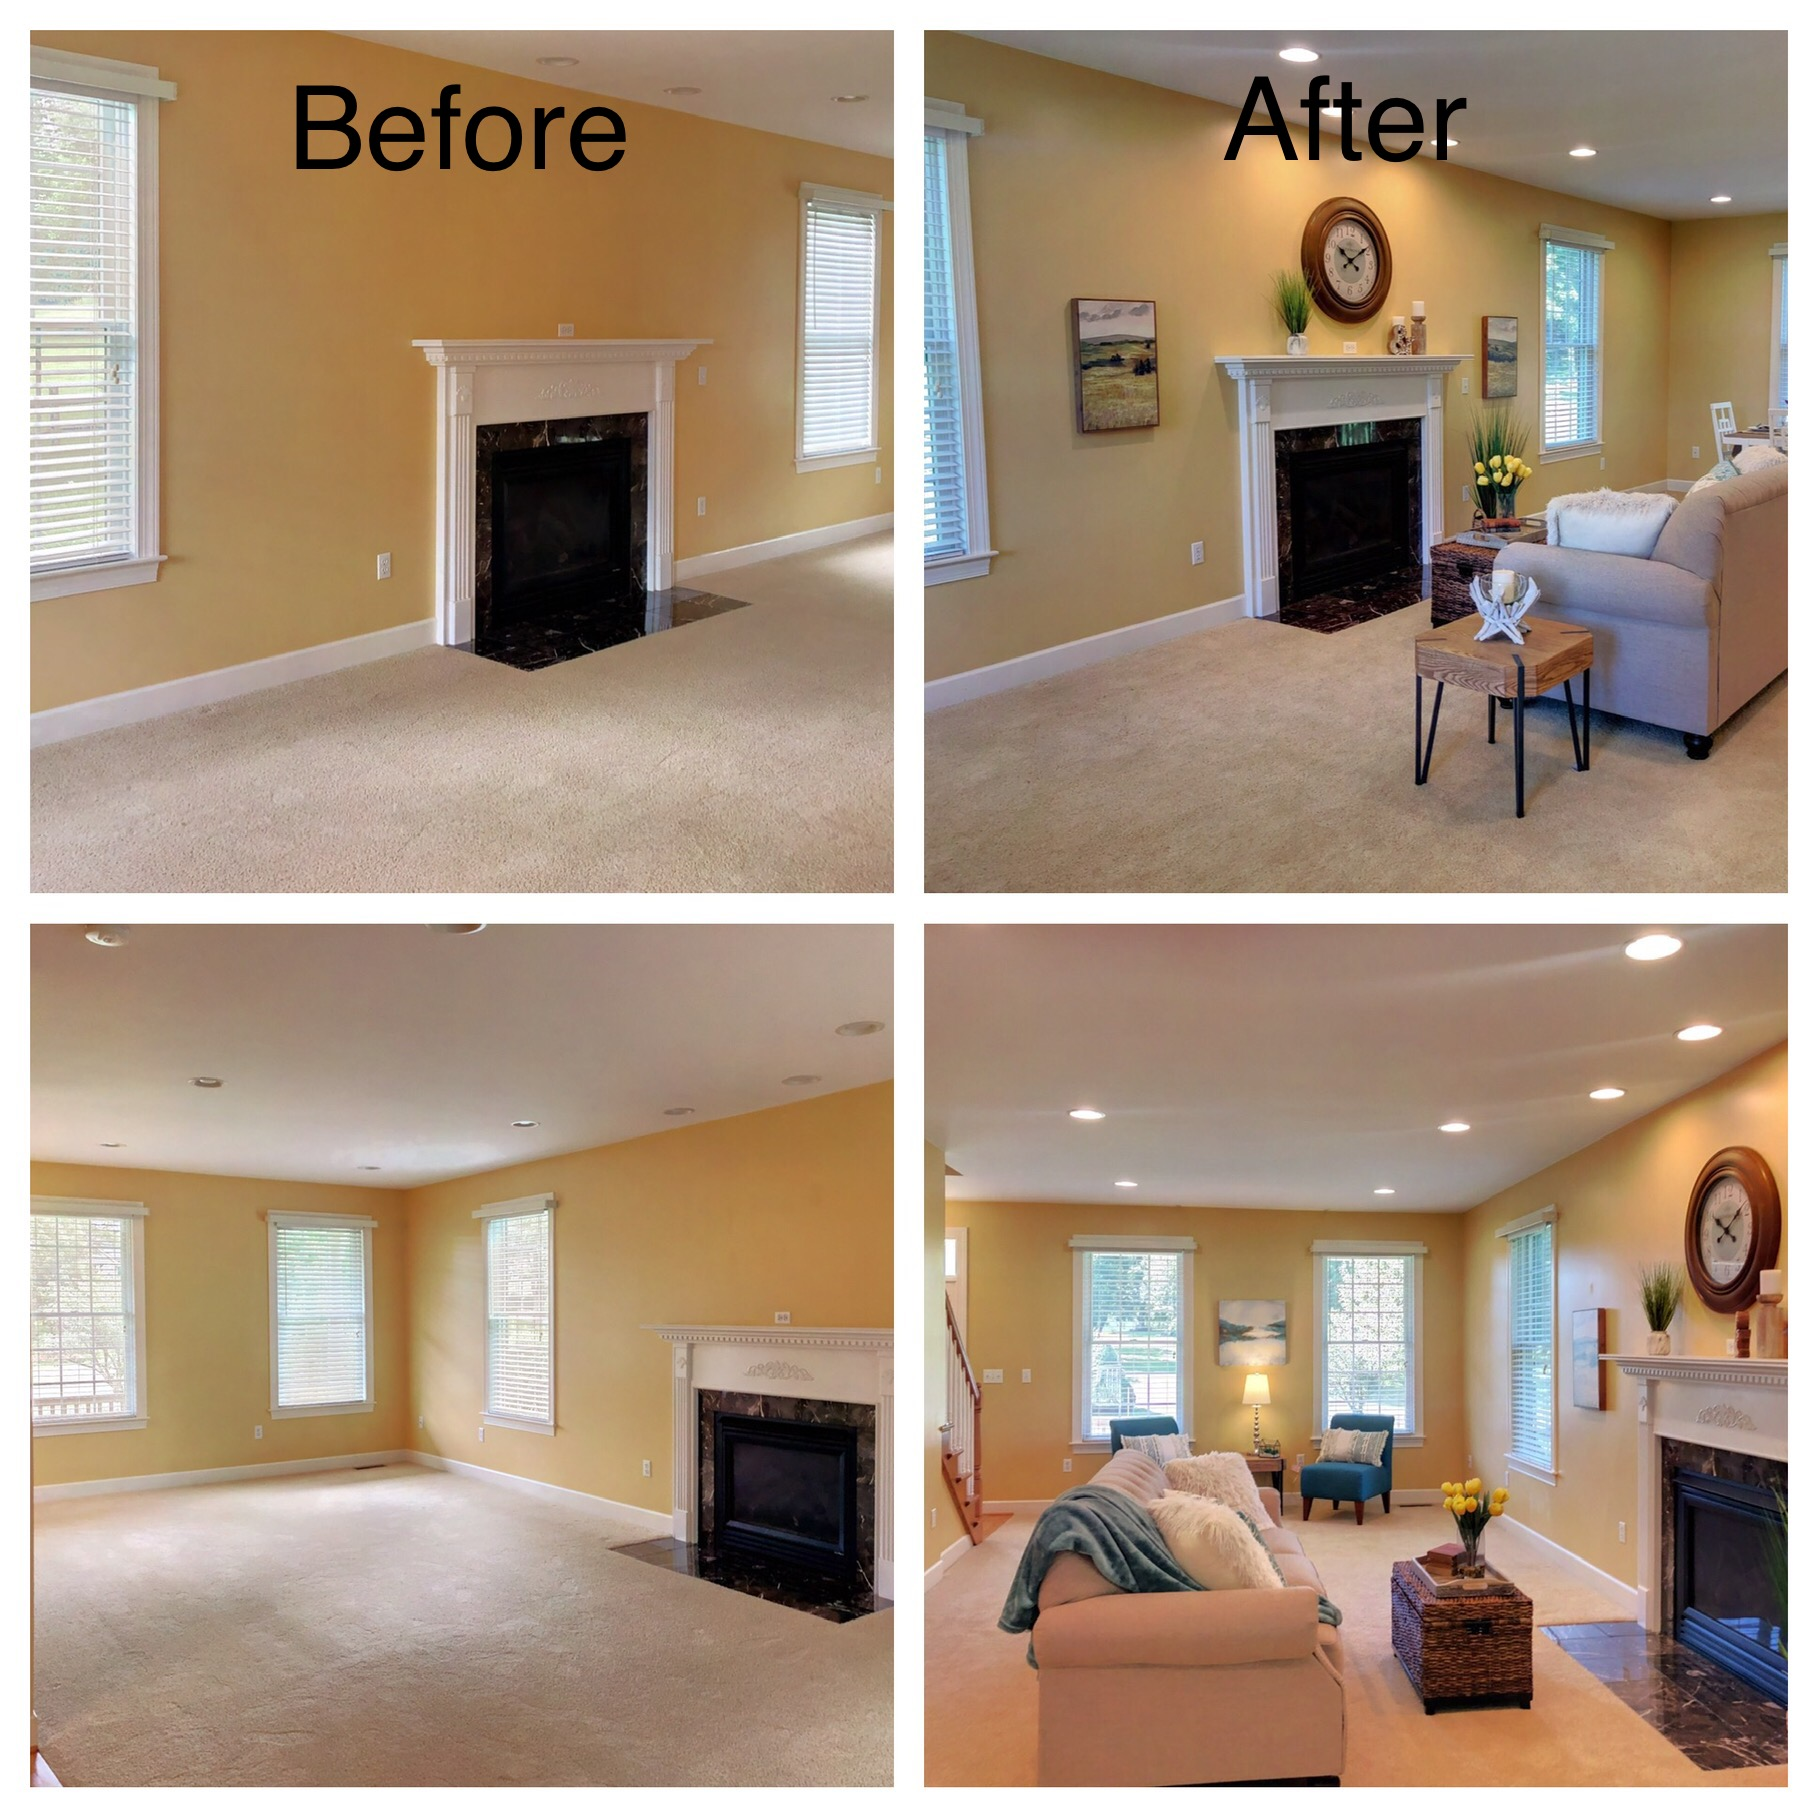 Before and After Staging by Sherri Blum